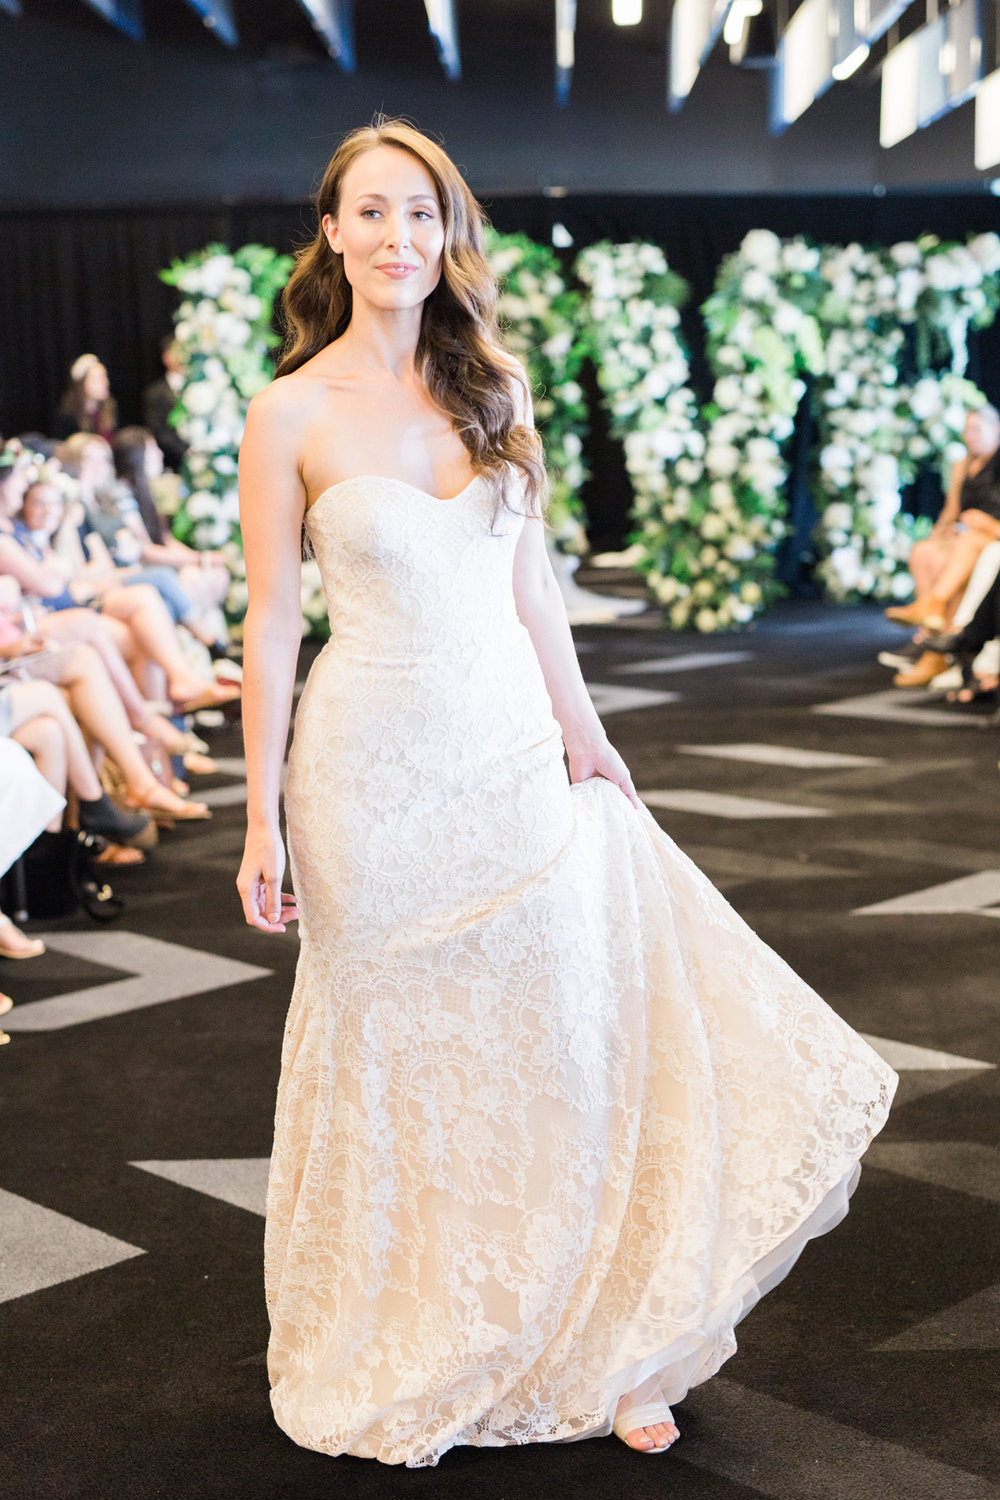 Love-Wedding-Festival-Sydney-Wedding-Gown-Angela-Osagie-14.jpg